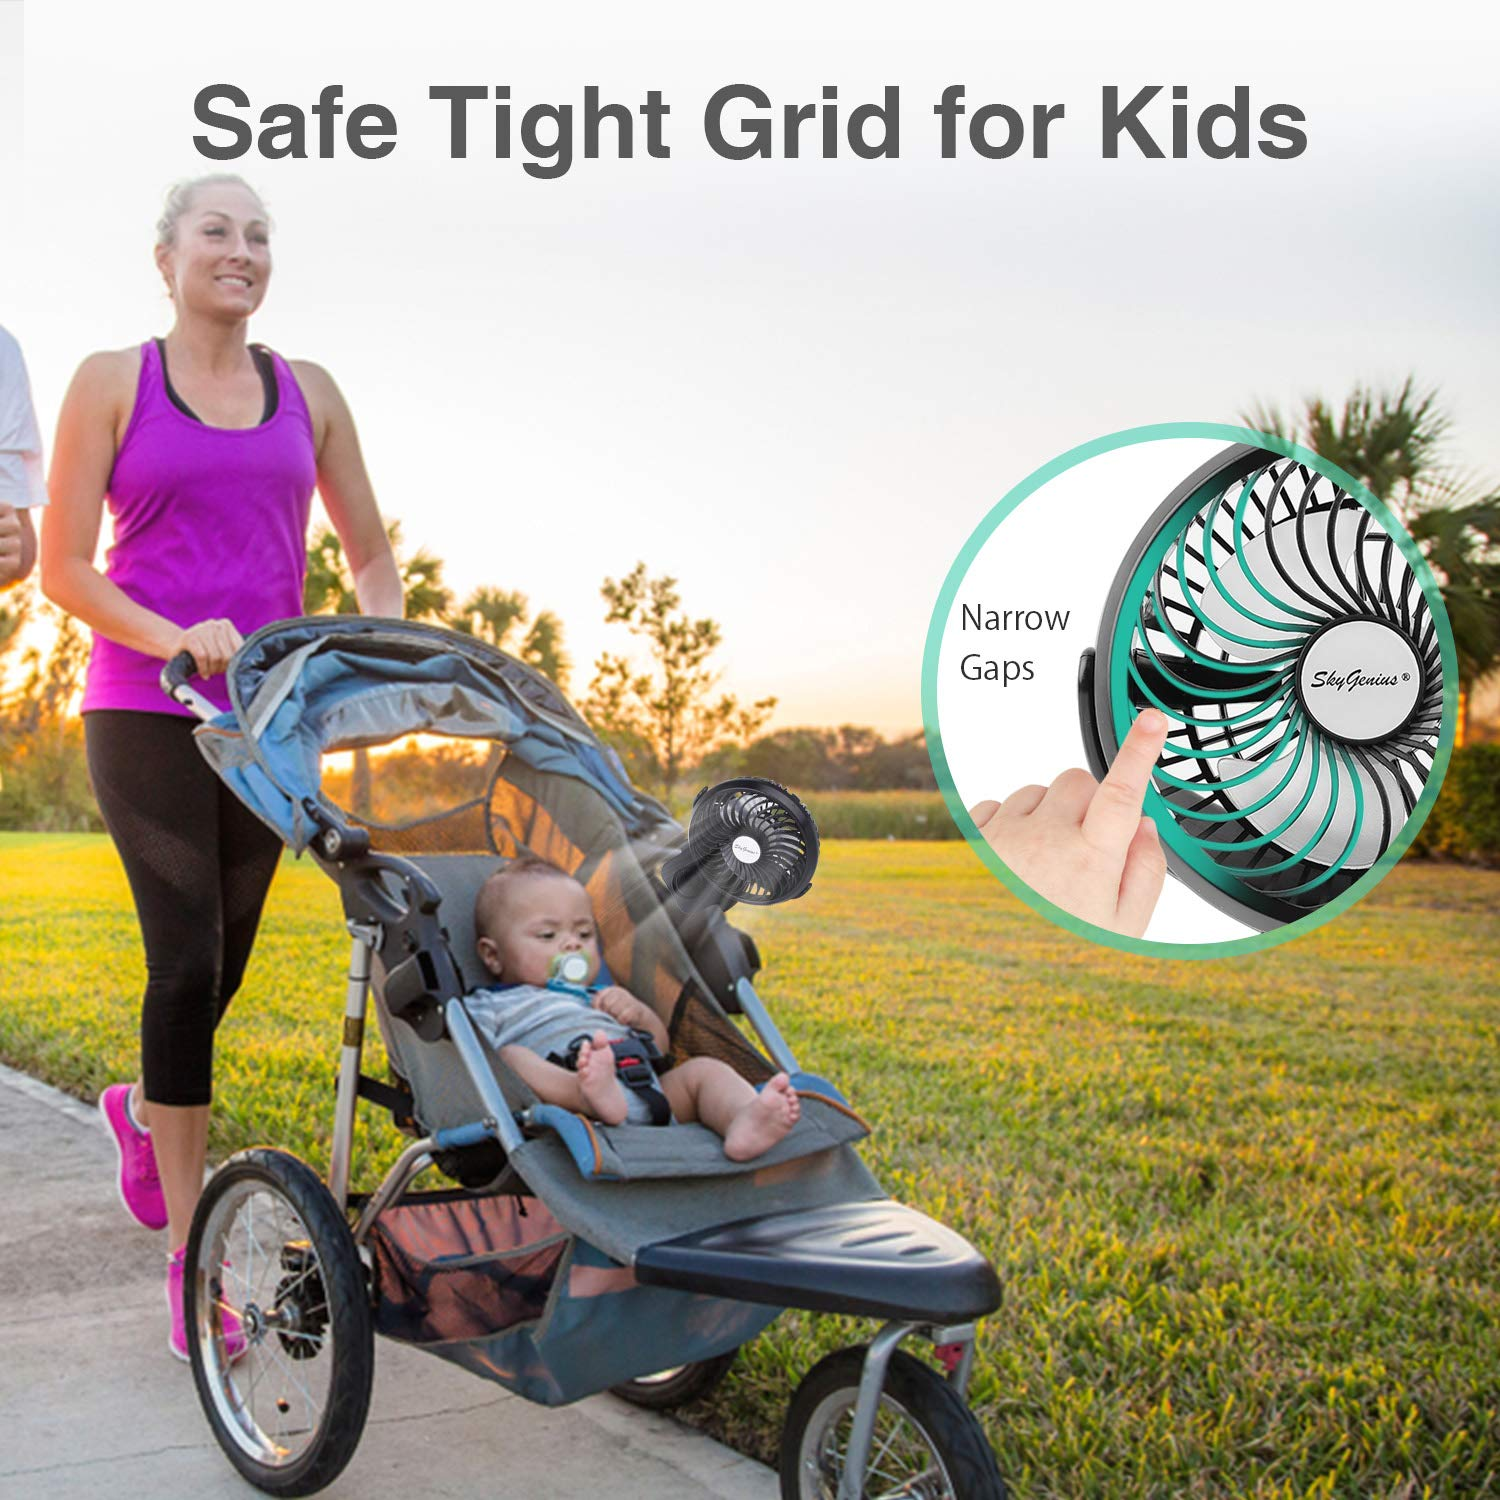 Battery Operated Clip on Stroller Fan - Portable Mini Desk Fan with Rechargeable 4400mAh Battery&USB Cable, USB Powered Clip Fan for Baby Stroller Office Outdoor Travel by BRIGENIUS (Image #5)